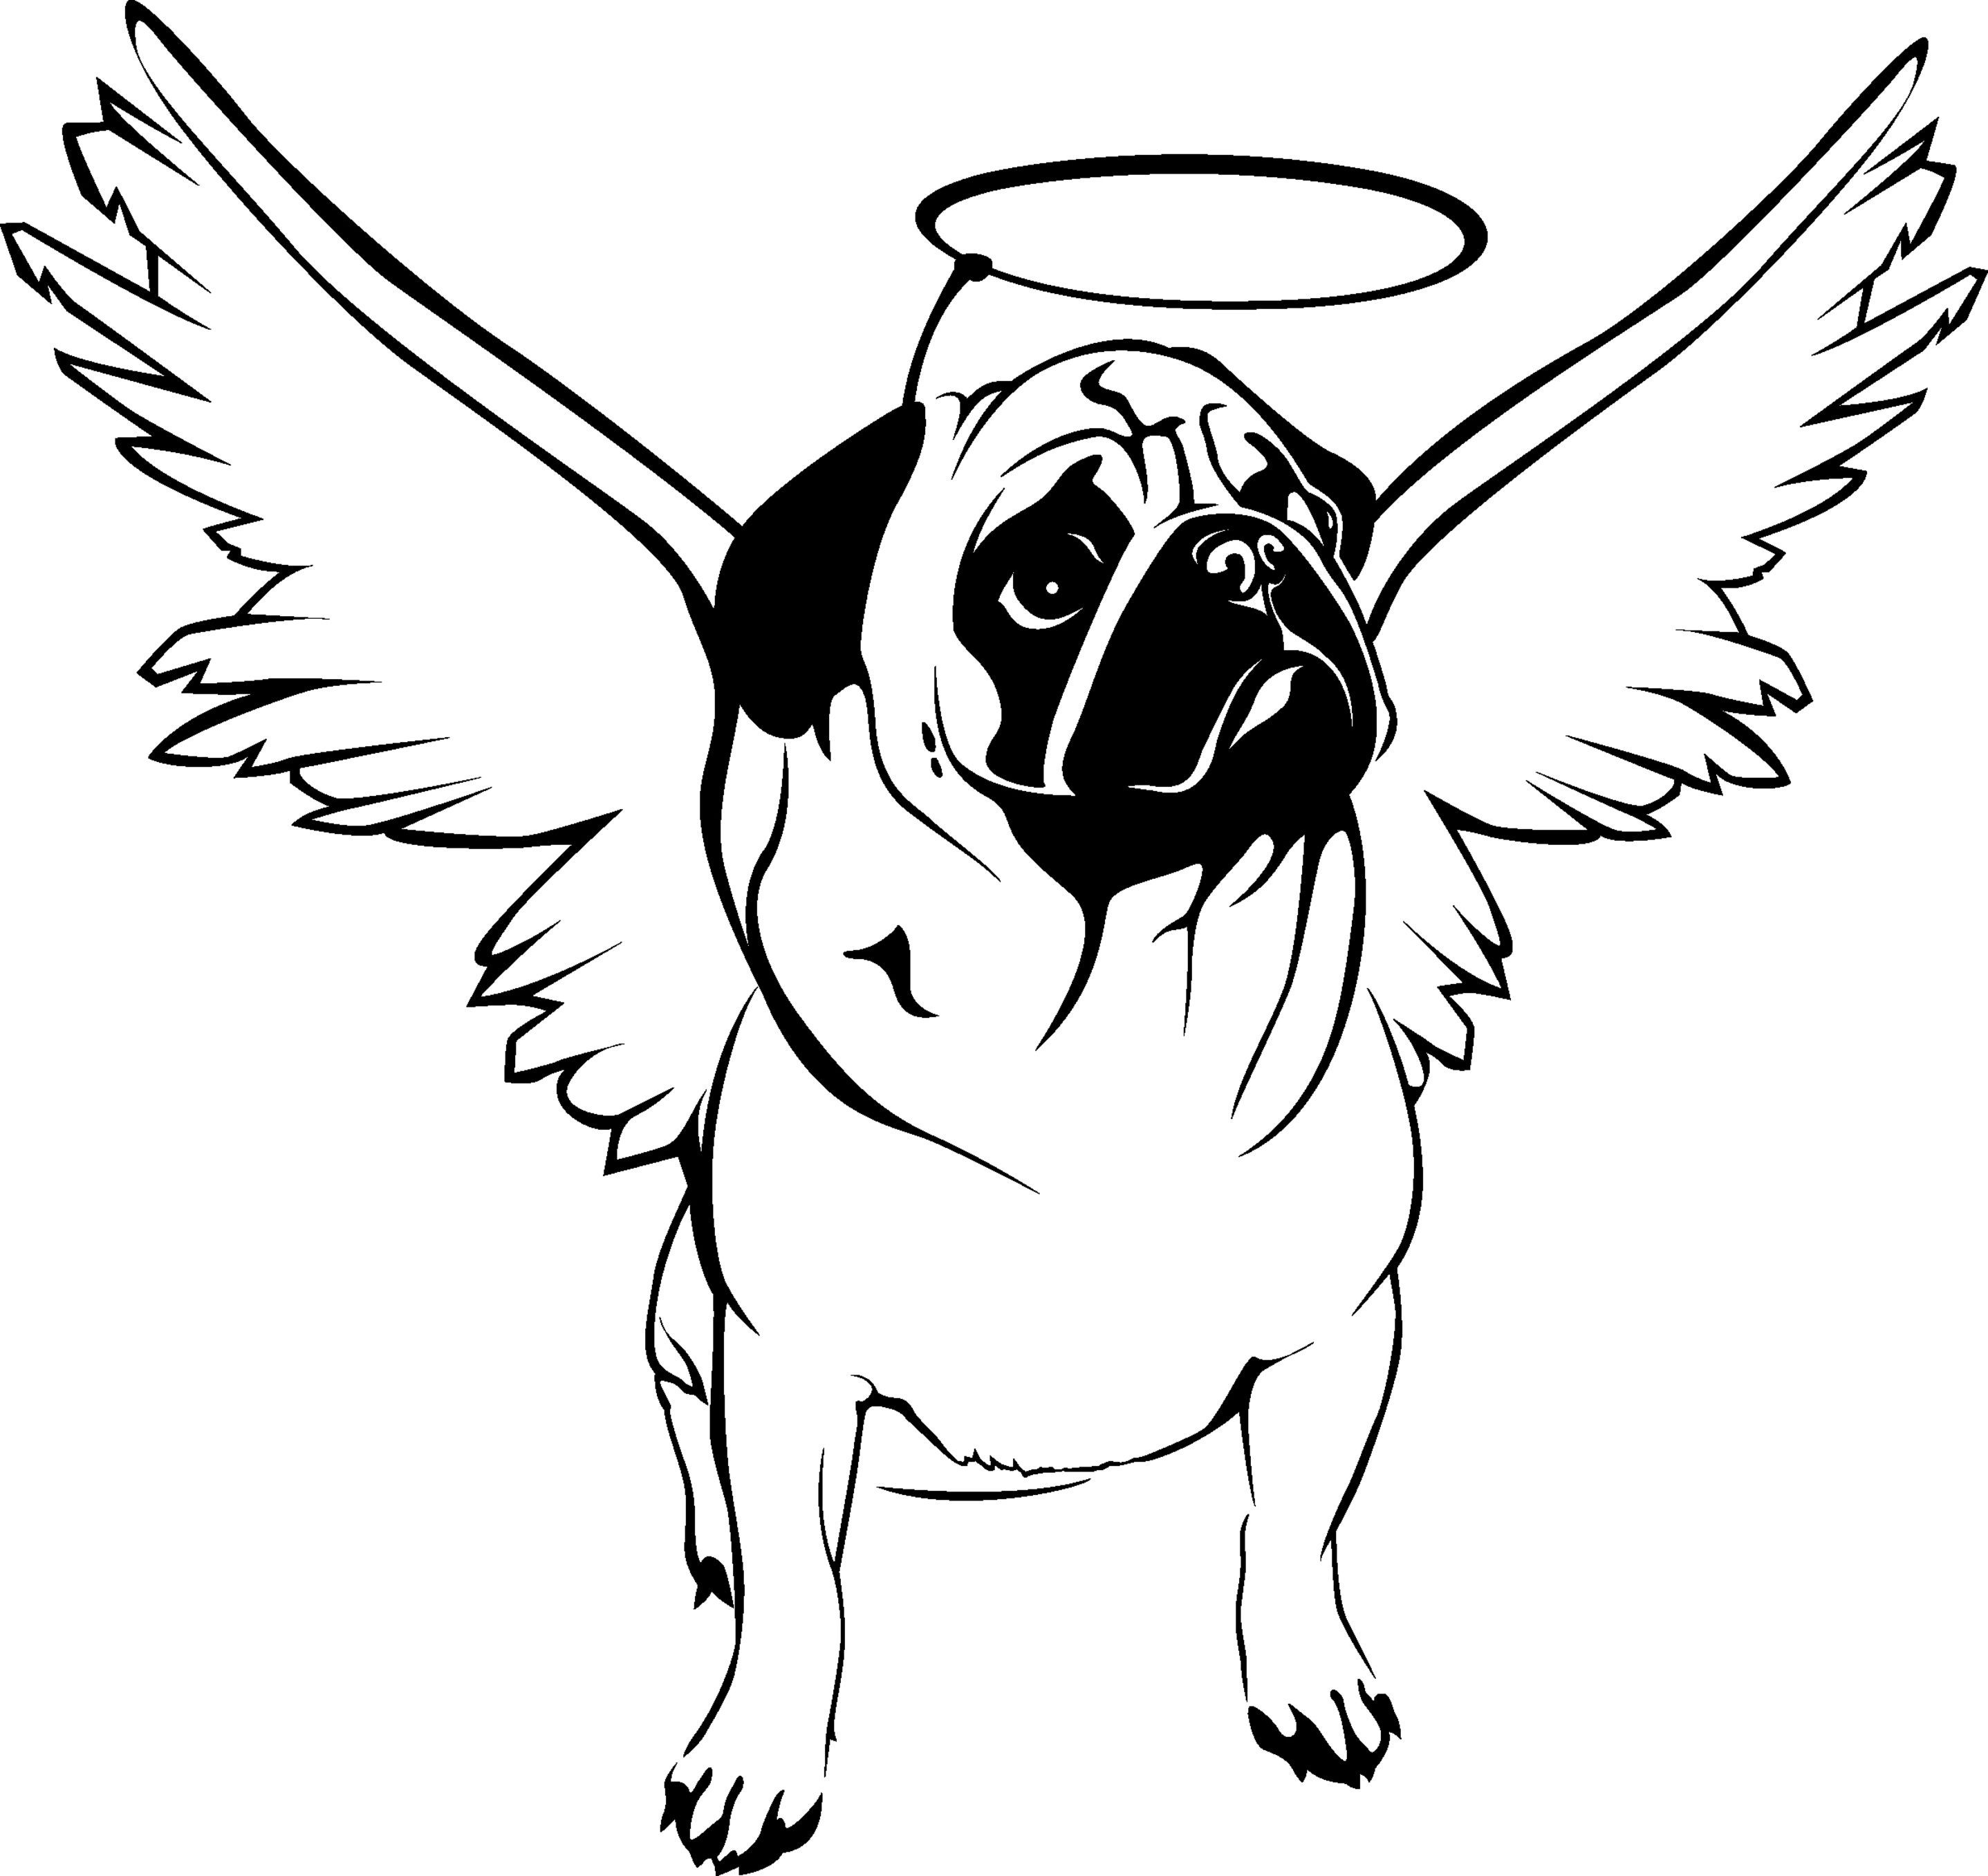 Pug Puppy Coloring Pages Coloring Cute Puppy Colorings Disney Free Printable Of Puppies New